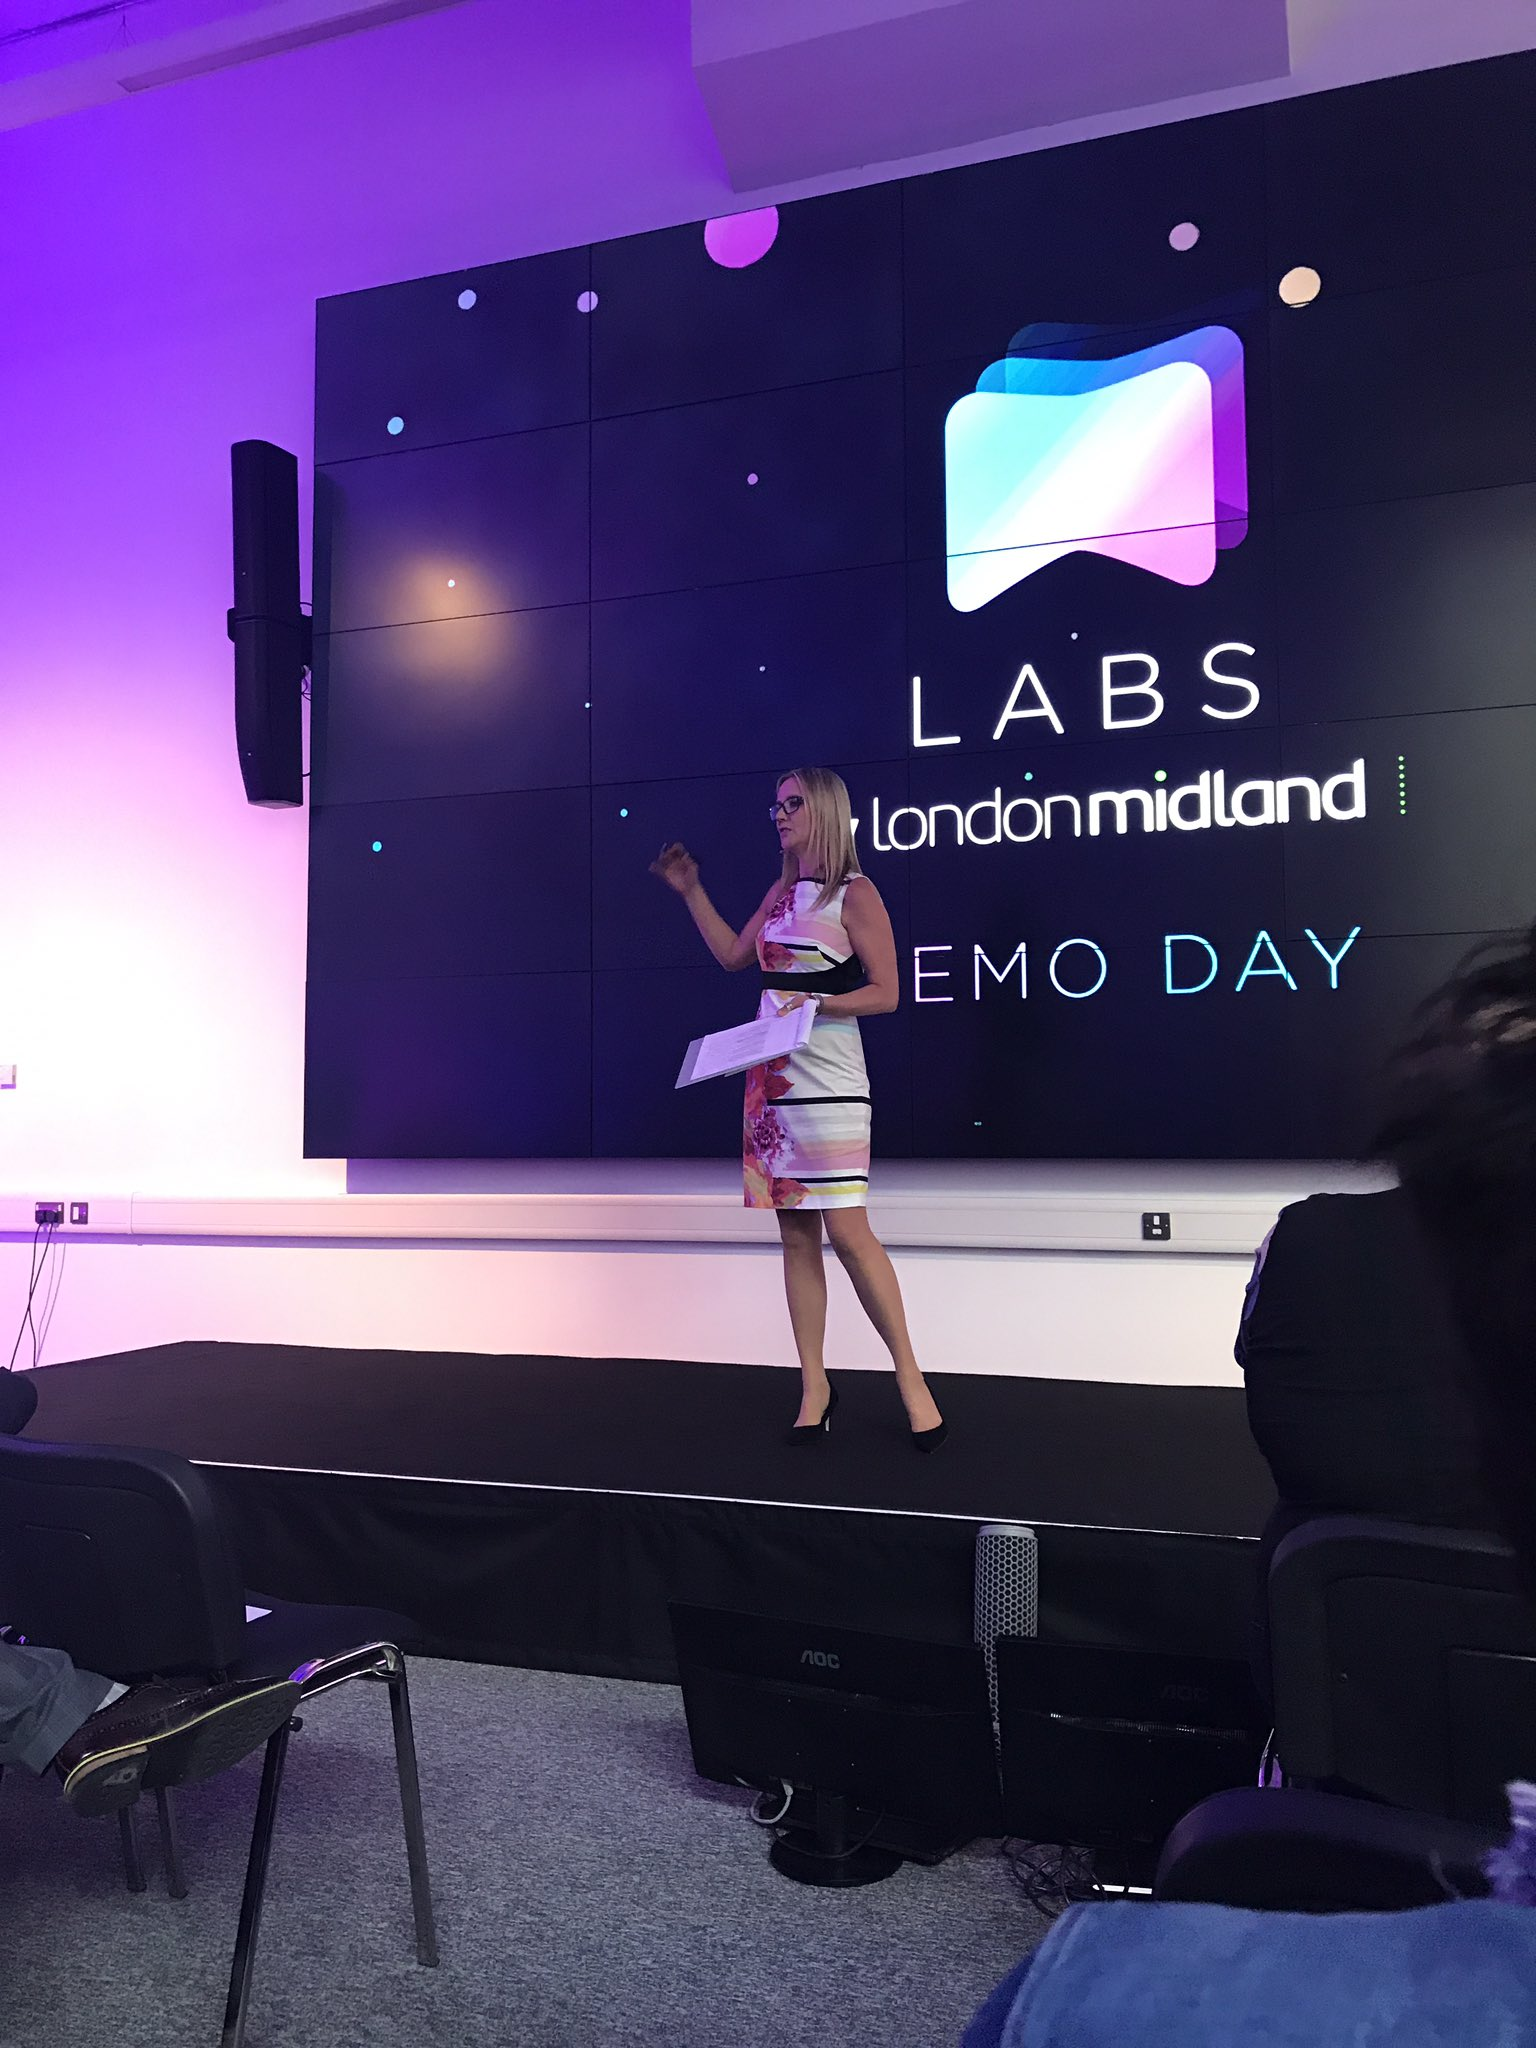 At the #lmlabsdemo with the lovely @katerussell presenting. https://t.co/IJaZk5hZFj